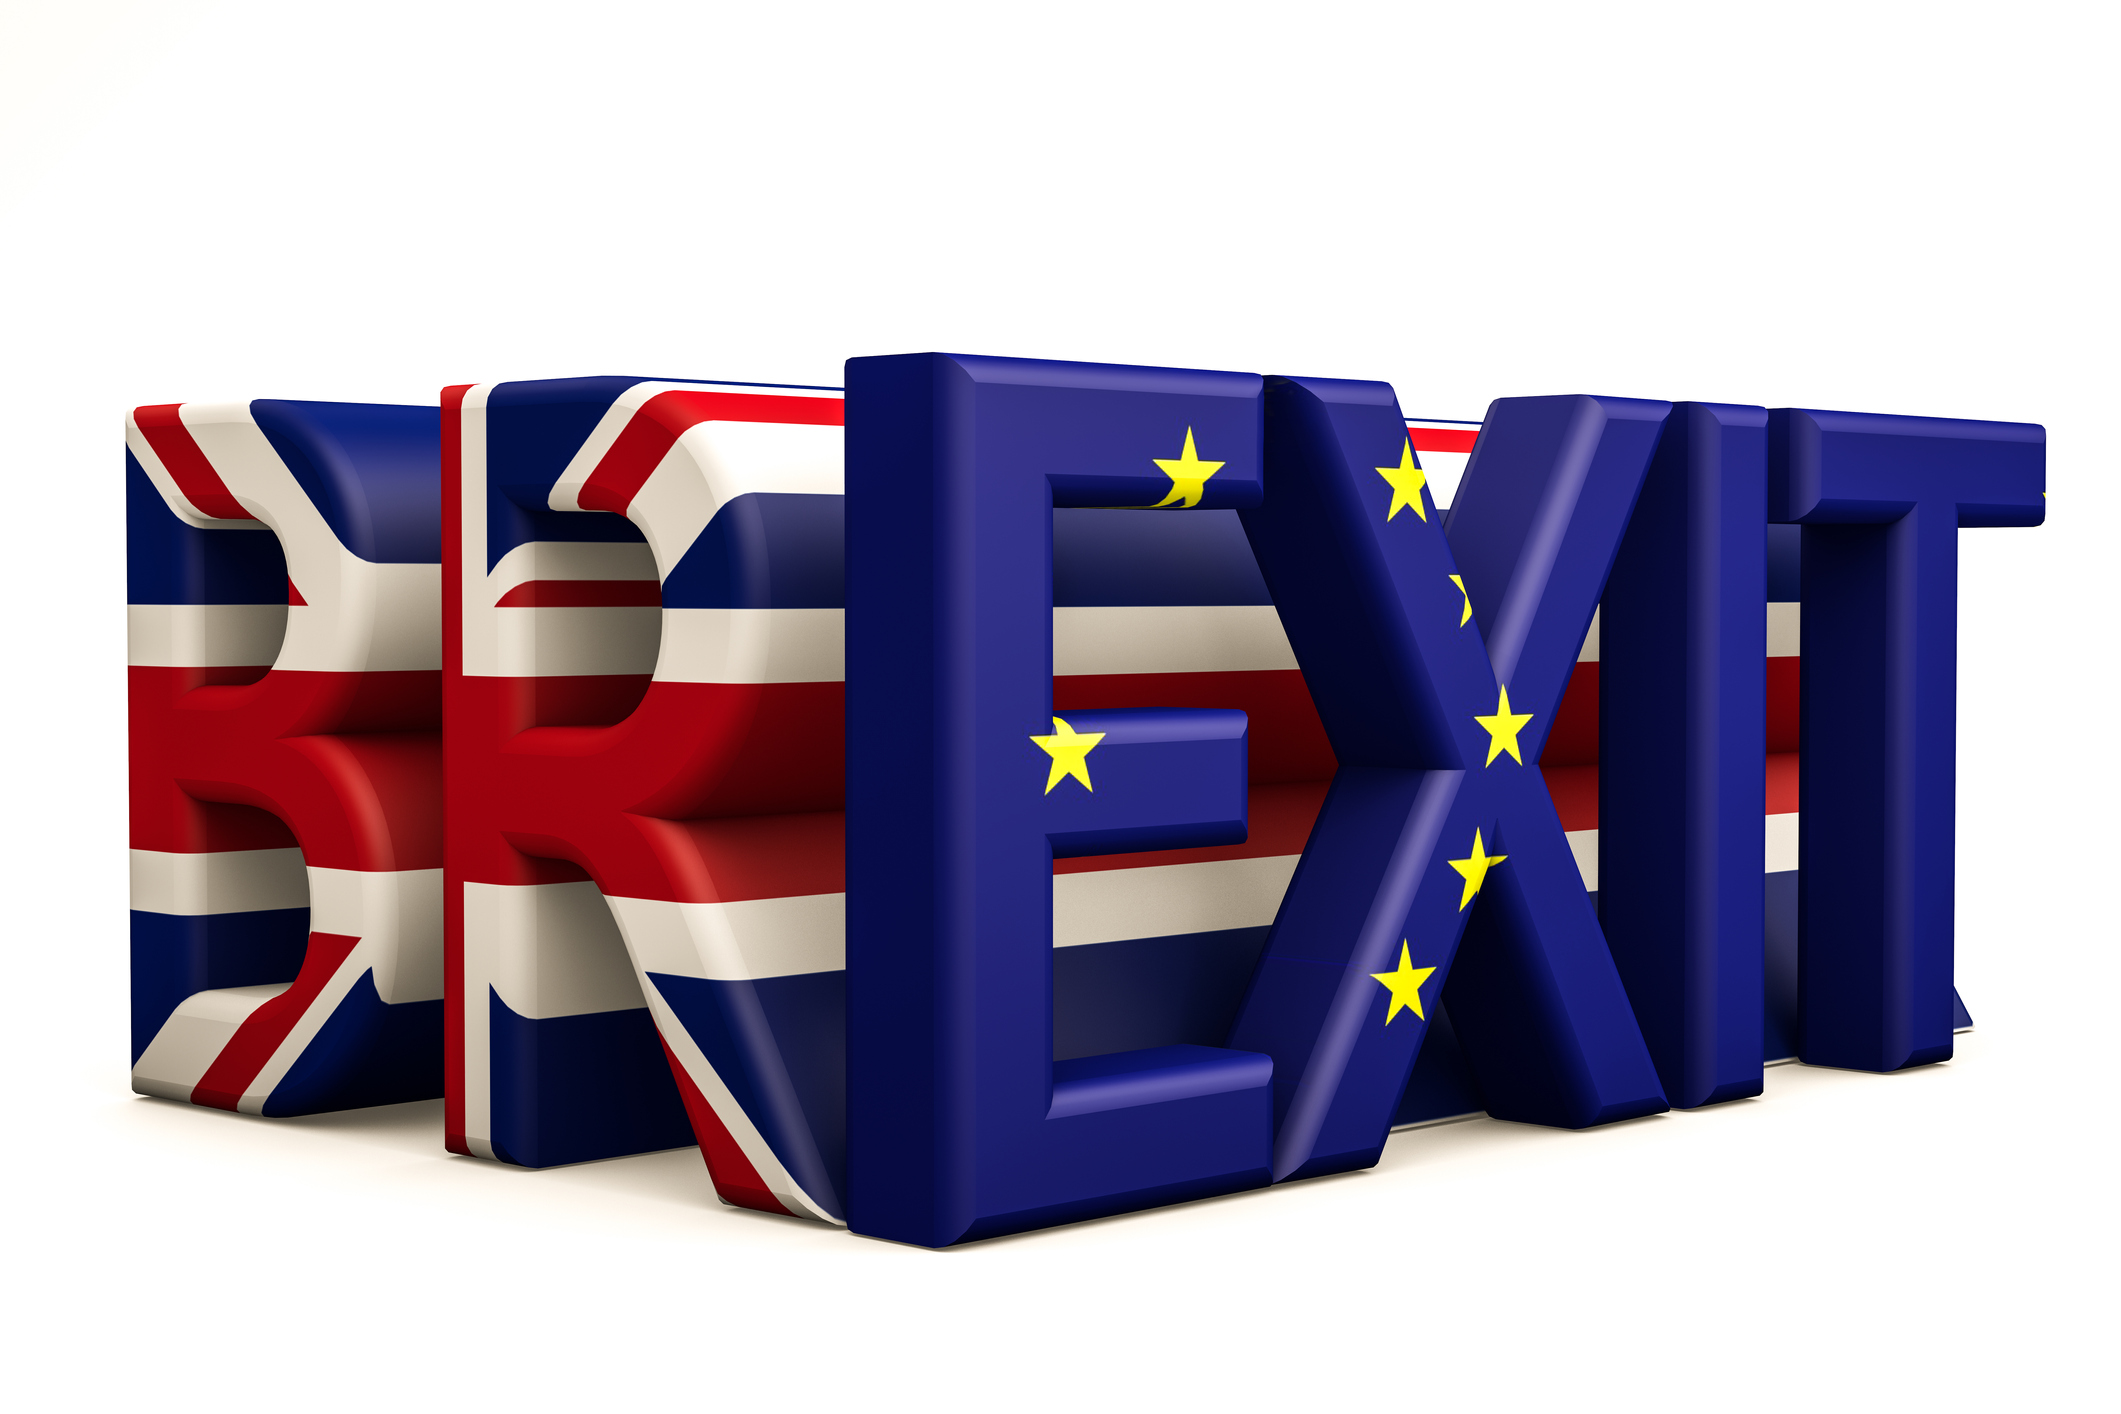 We've officially left the EU, but what does Brexit mean for ENDS Manufacturers?